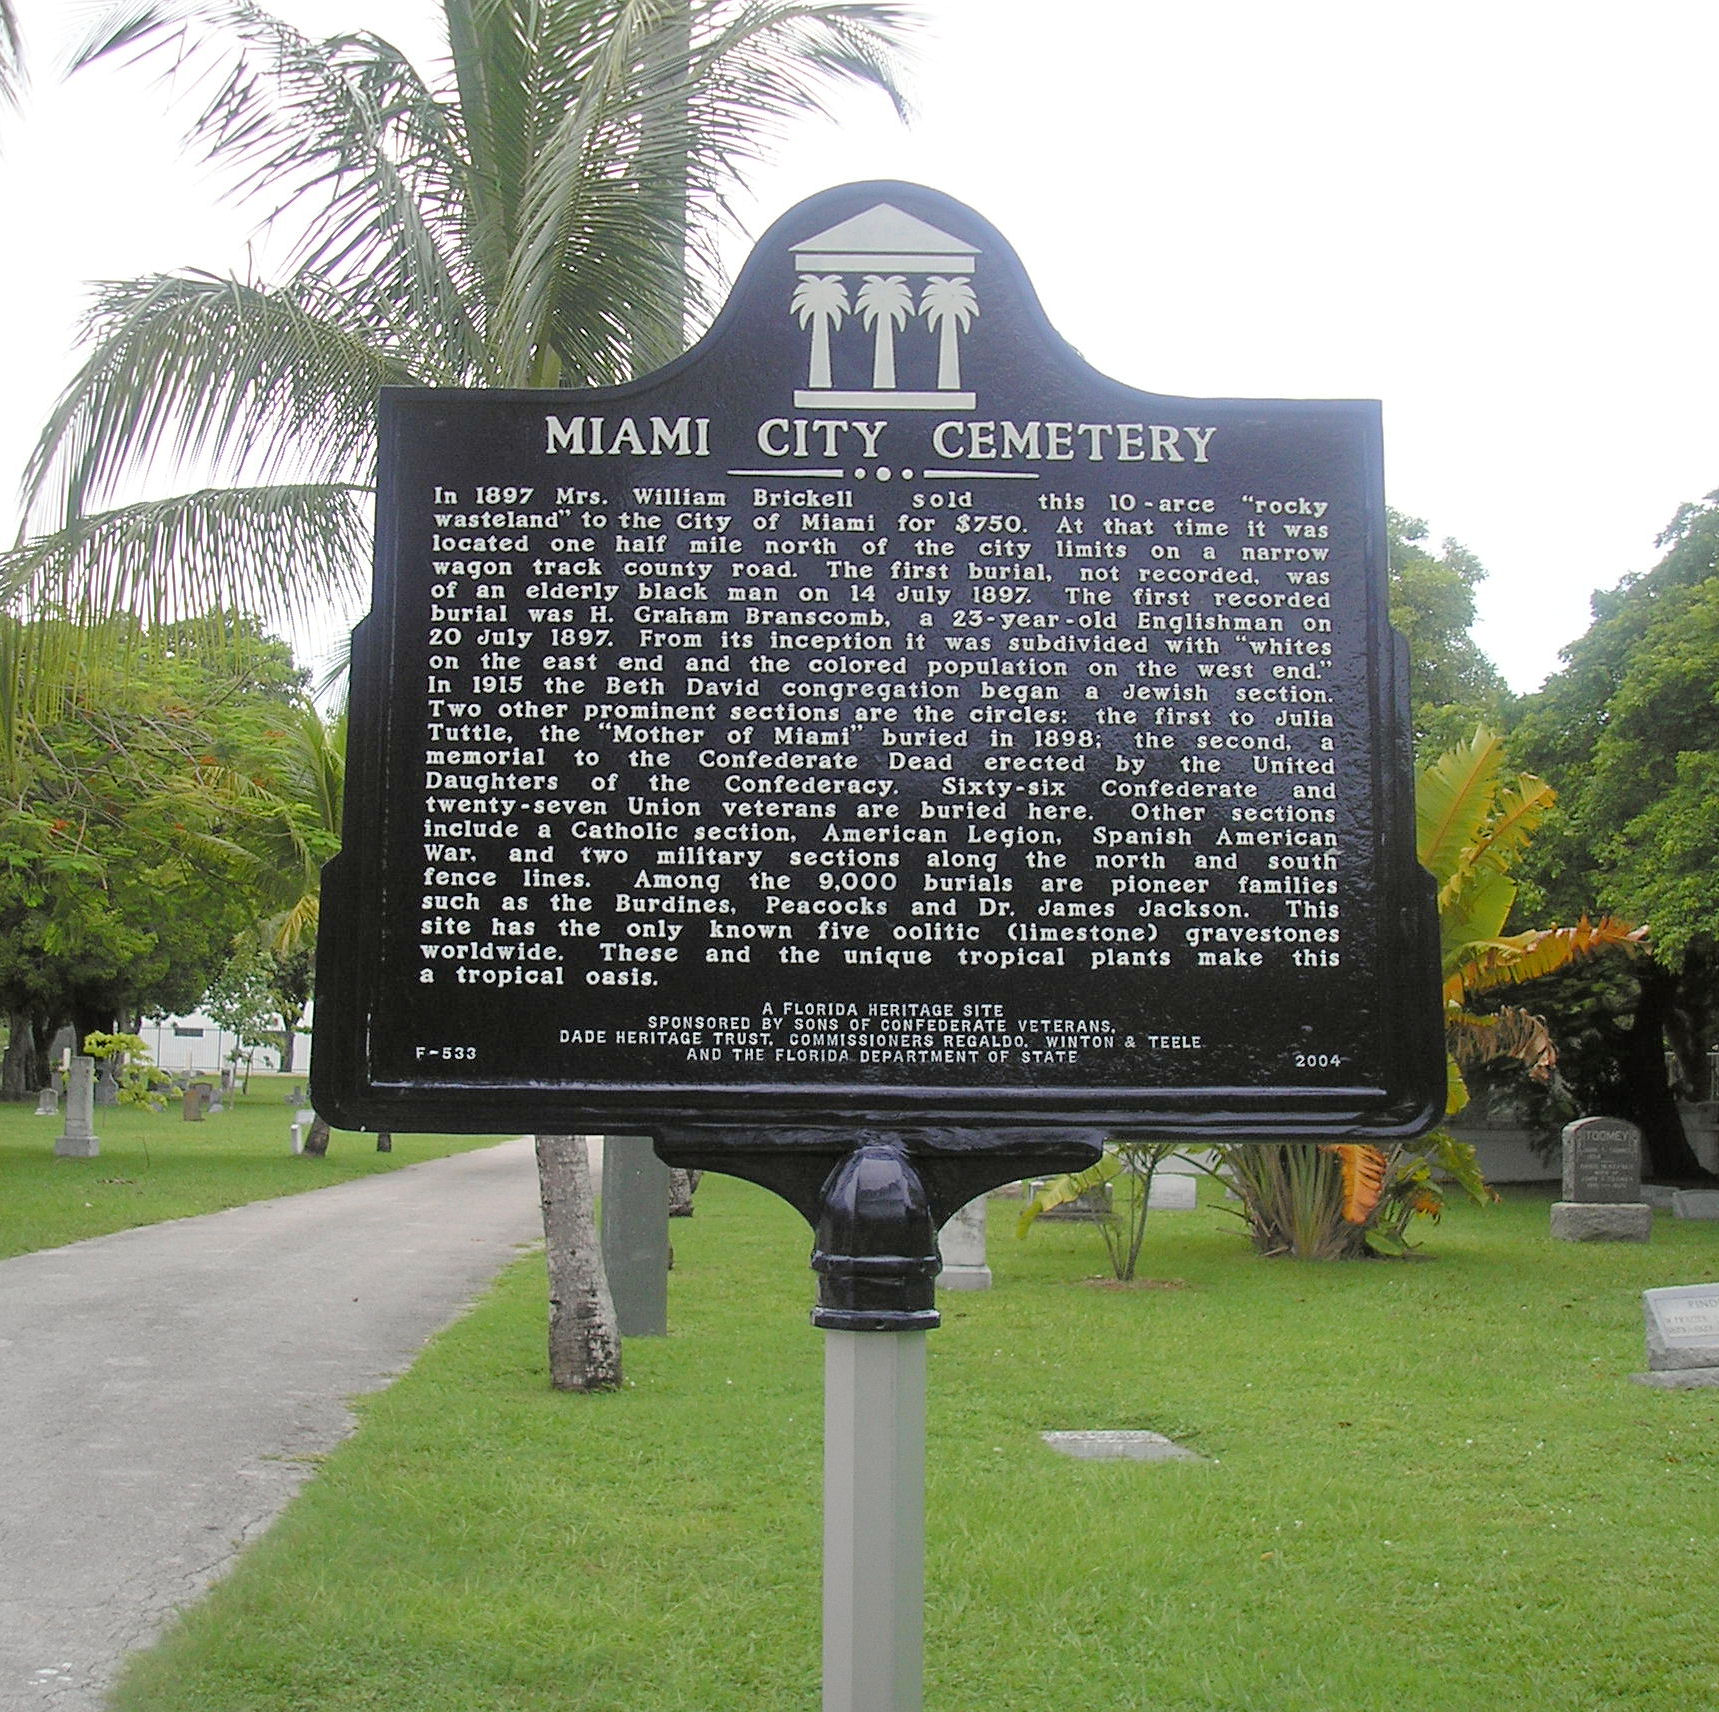 Miami City Cemetery Historic Plaque